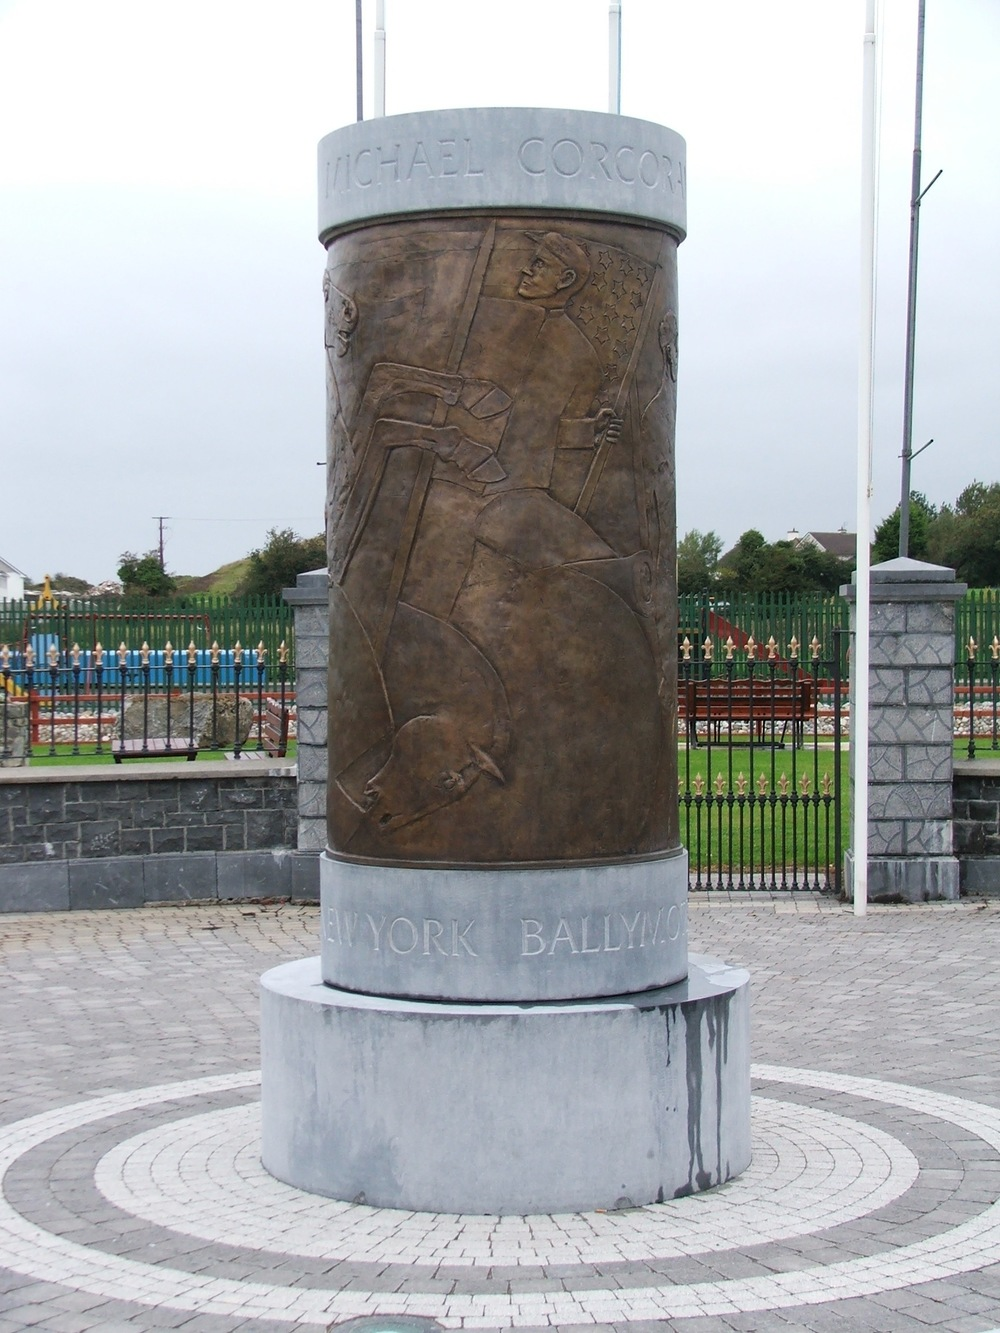 National Memorial to the Fighting 69th - Ballymote, Ireland